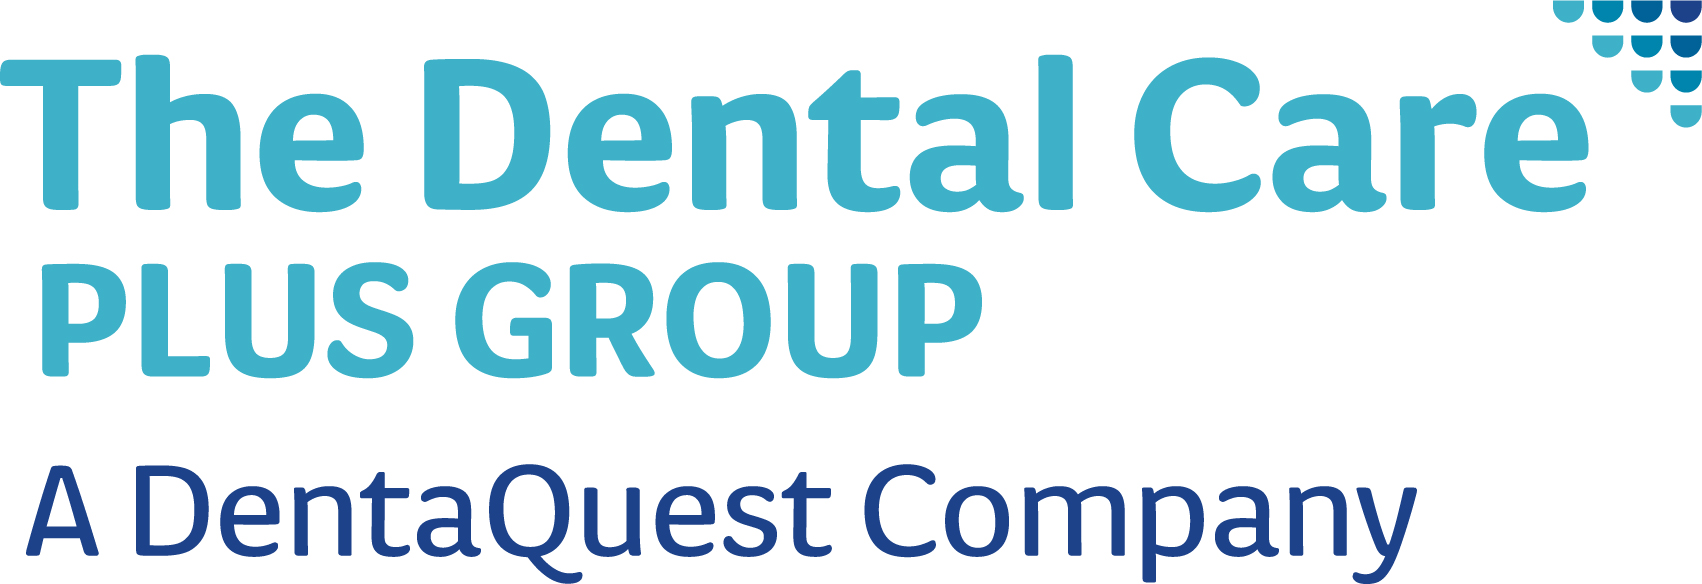 The dental care PLUS group. A DentaQuest company